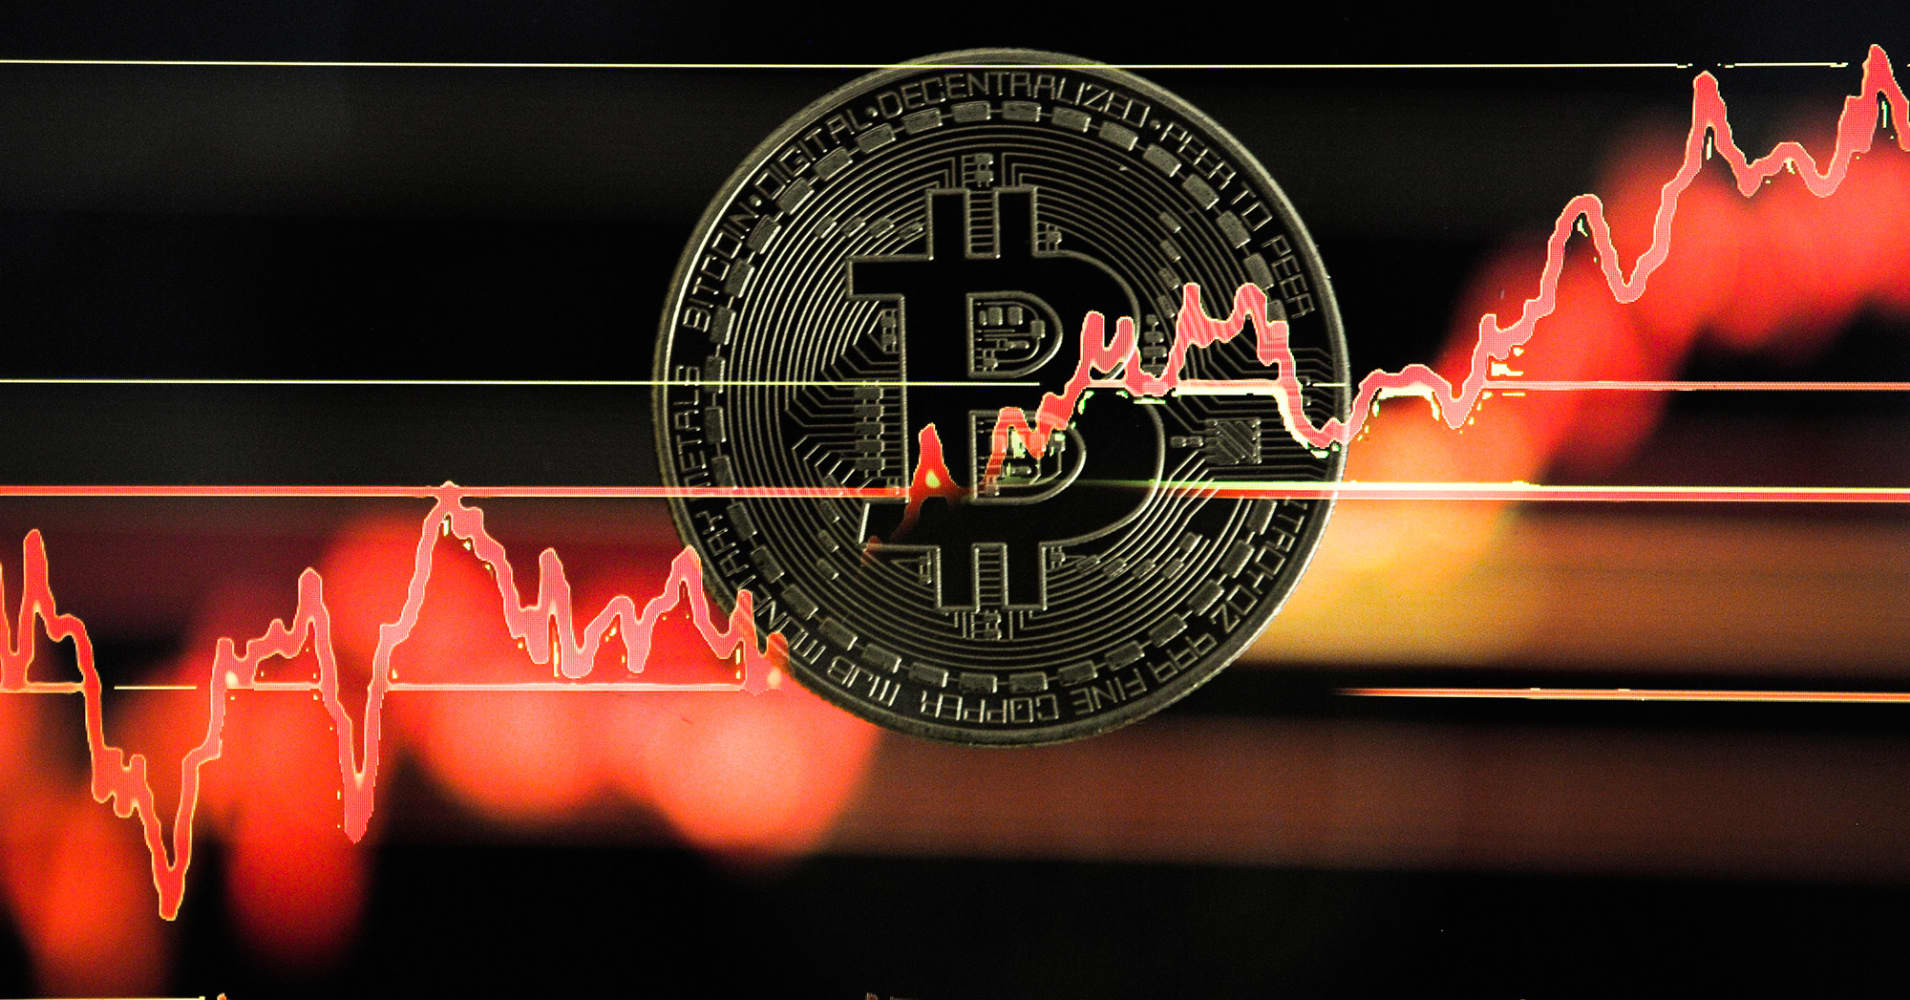 Cryptocurrency market could hit $1 trillion this year with bitcoin surging to $50,000, experts say